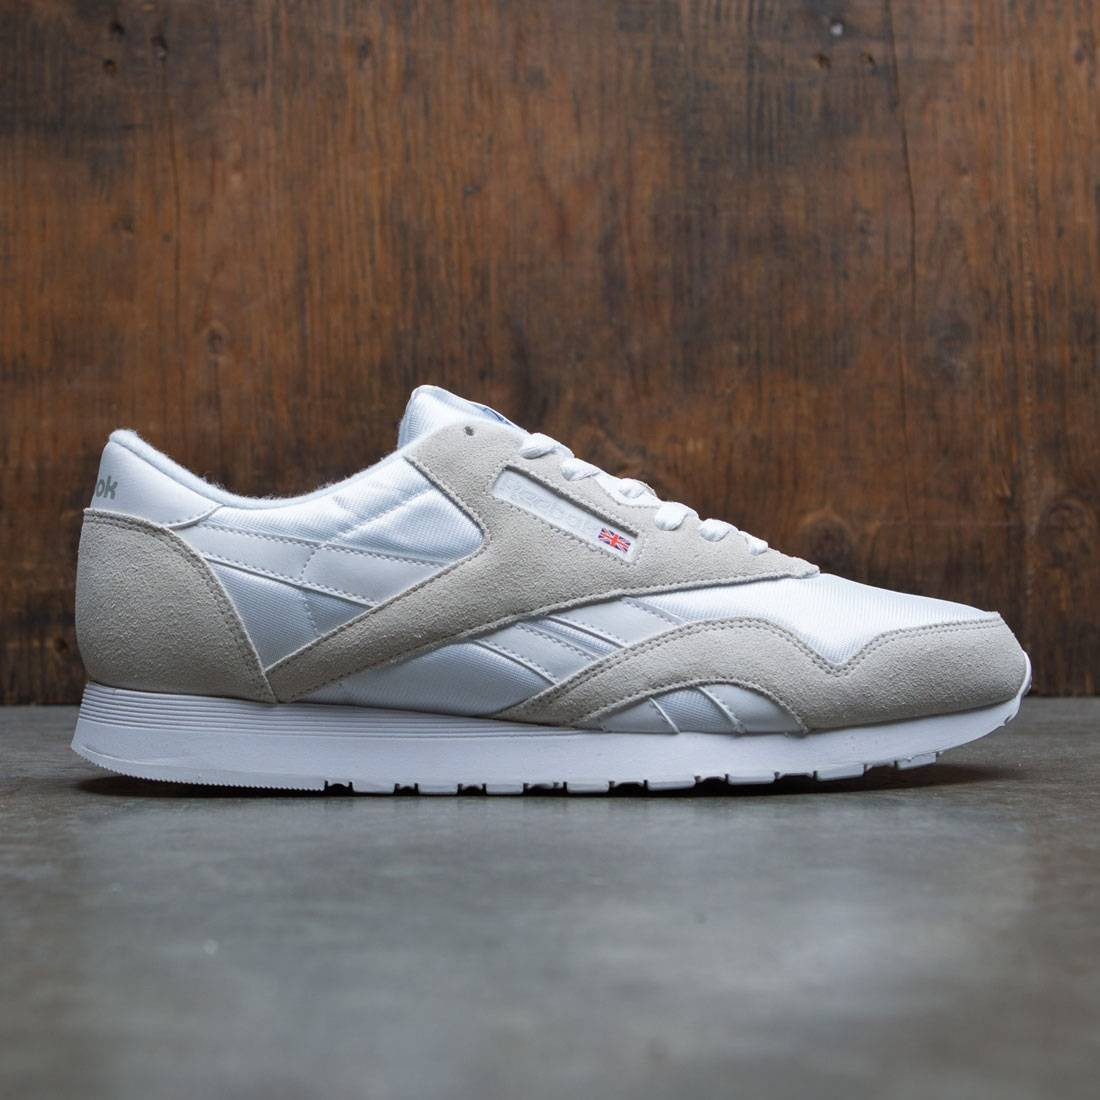 innovative design 2019 discount sale attractive designs Reebok Men Classic Nylon (white / light grey)